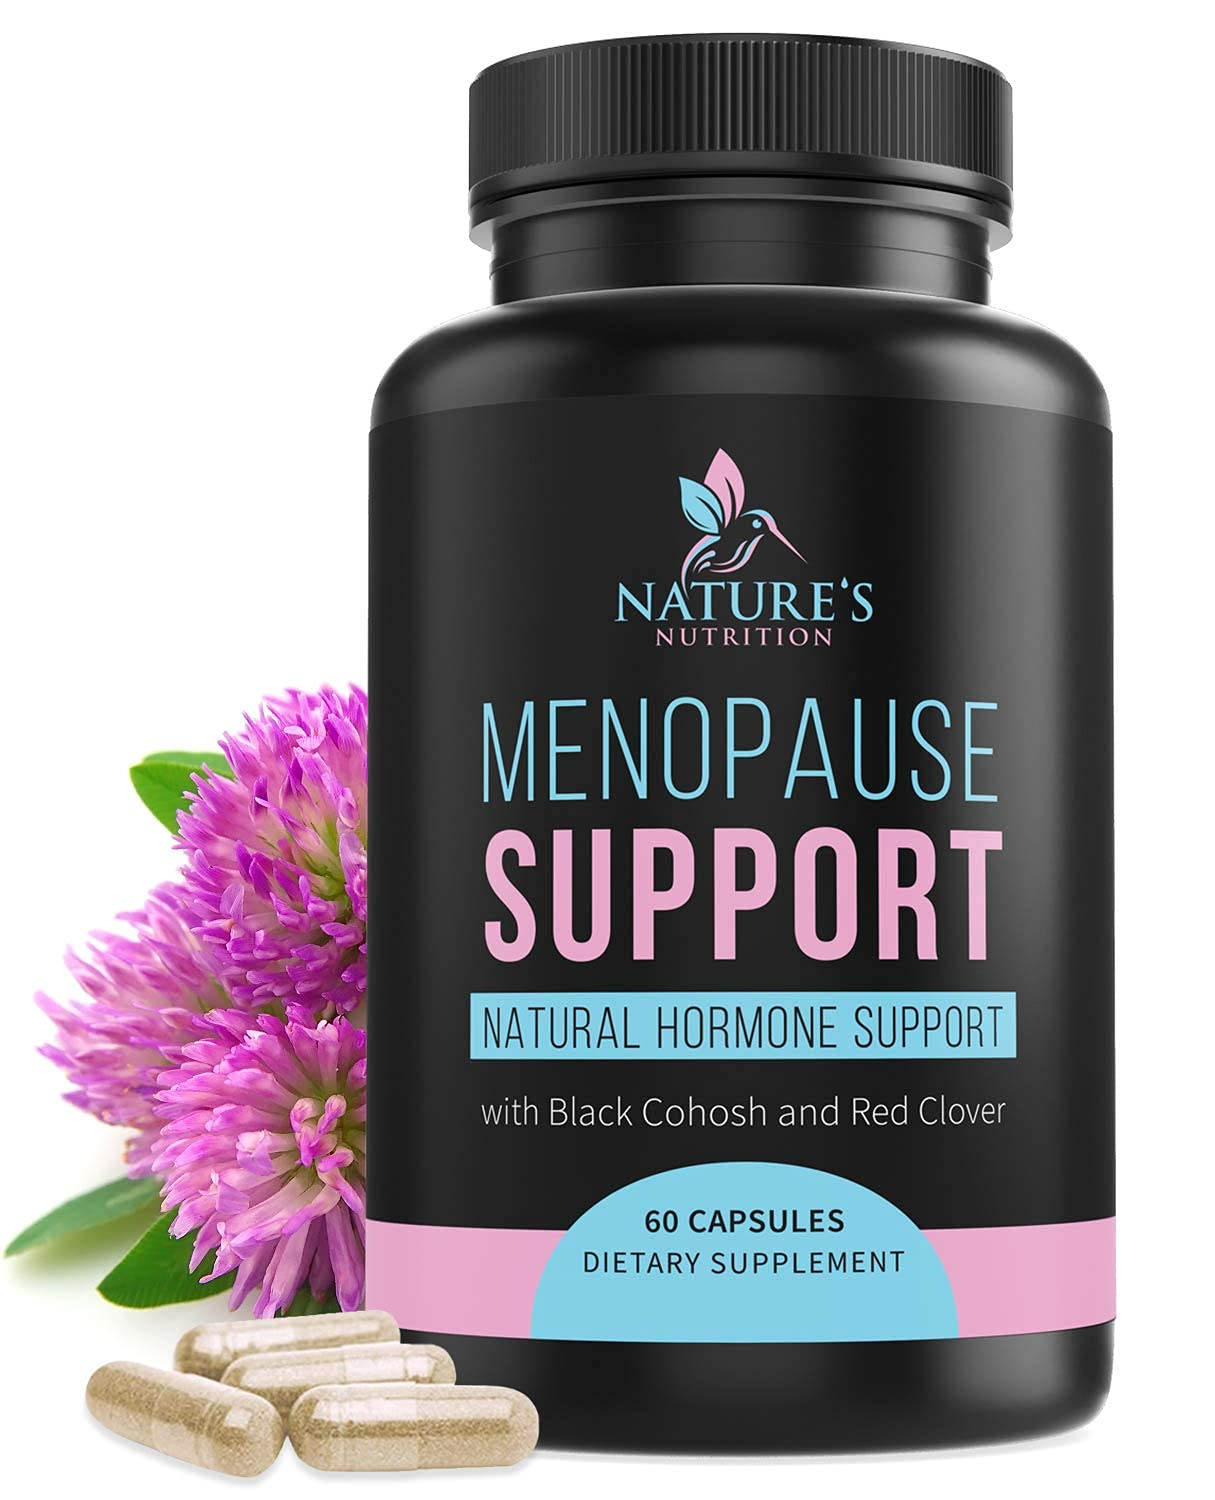 Menopause Supplements Extra Strength Hot Flash Support 1256 mg - Menopause Support for Women - Made in USA - Natural Support with Black Cohosh, Dong Quai & Soy Isoflavones - 60 Capsules